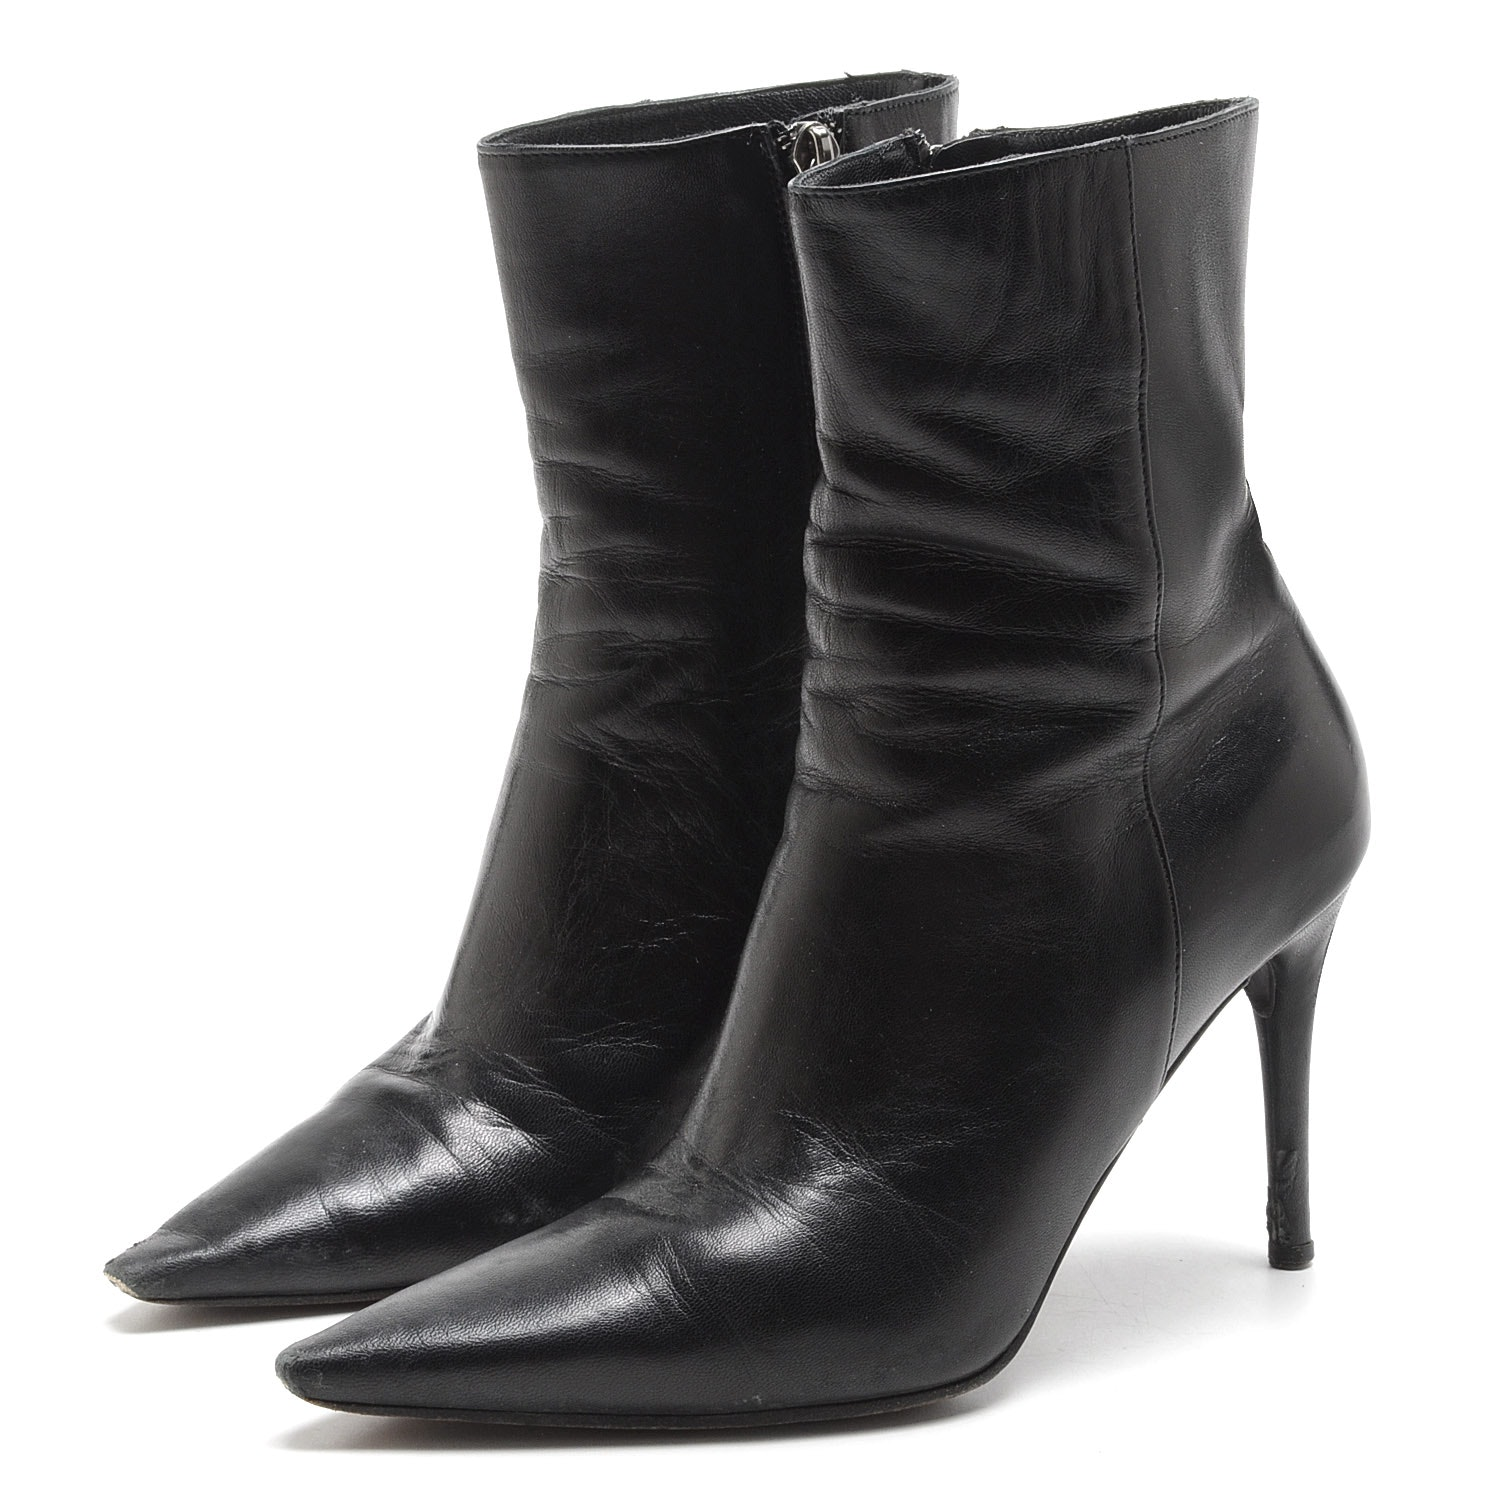 Pair of Gucci Black Lambskin Leather Booties